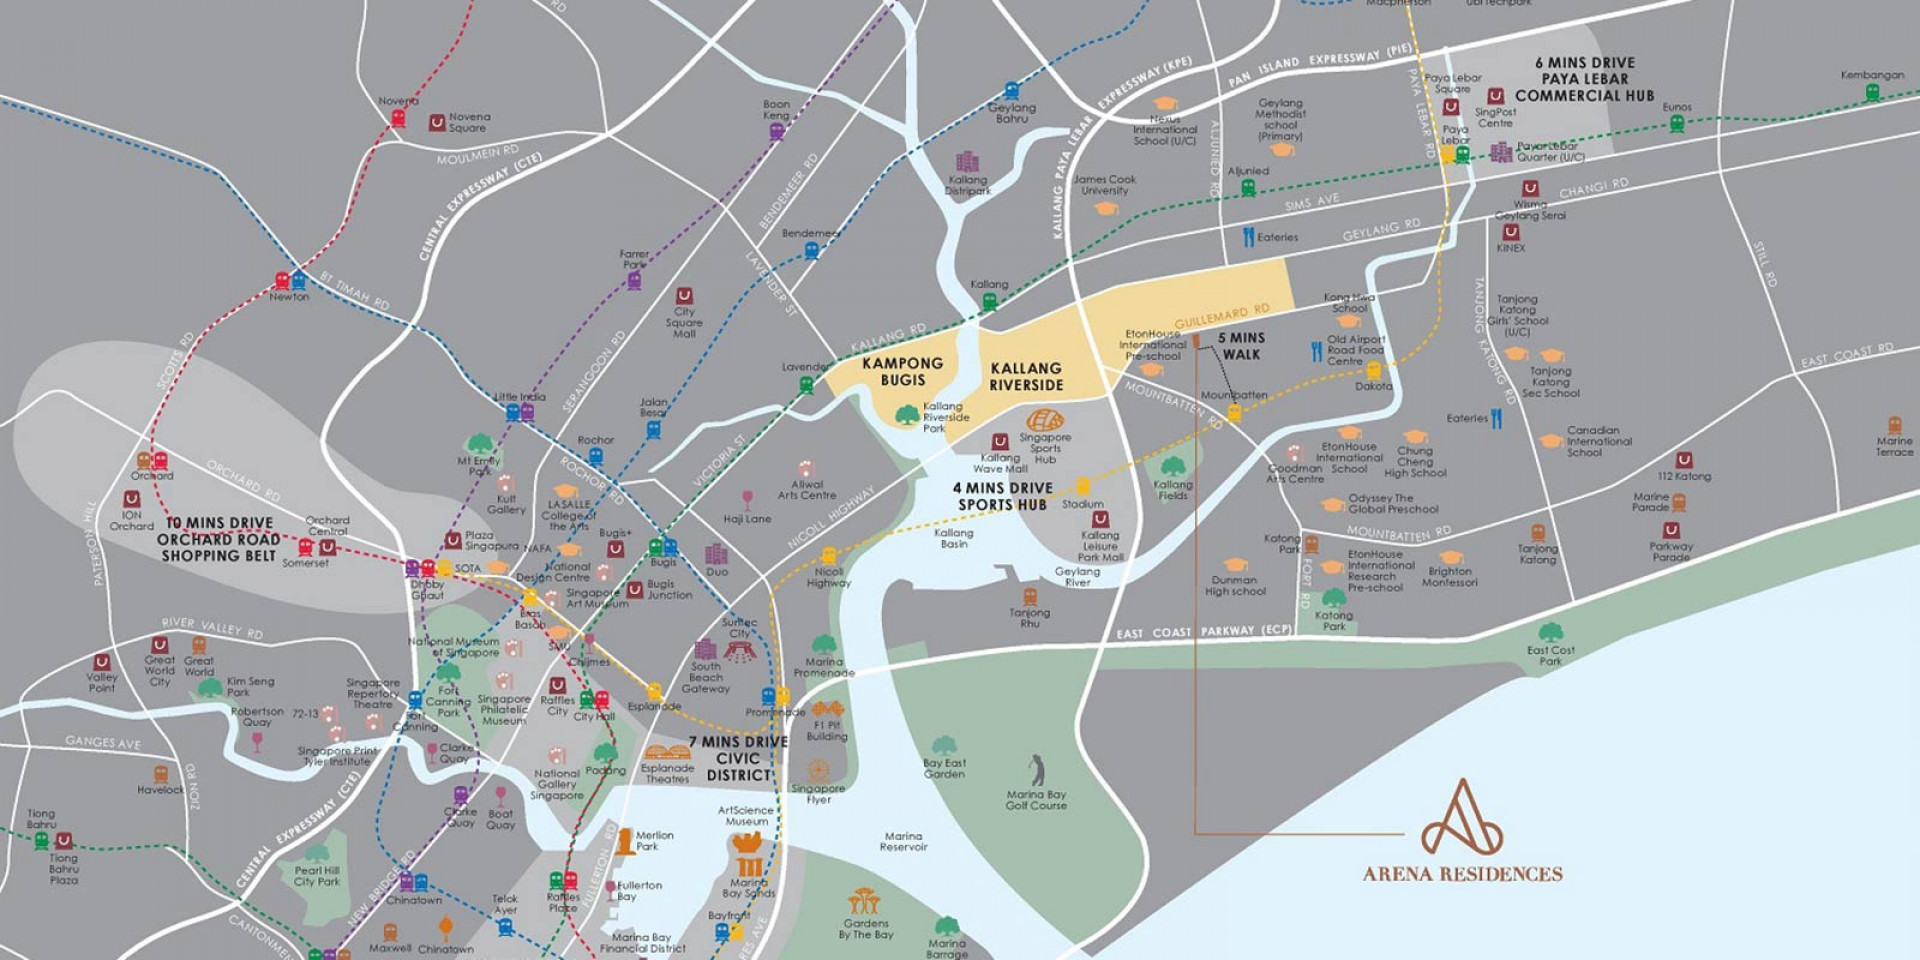 newlaunch.sg arena residences locationmap